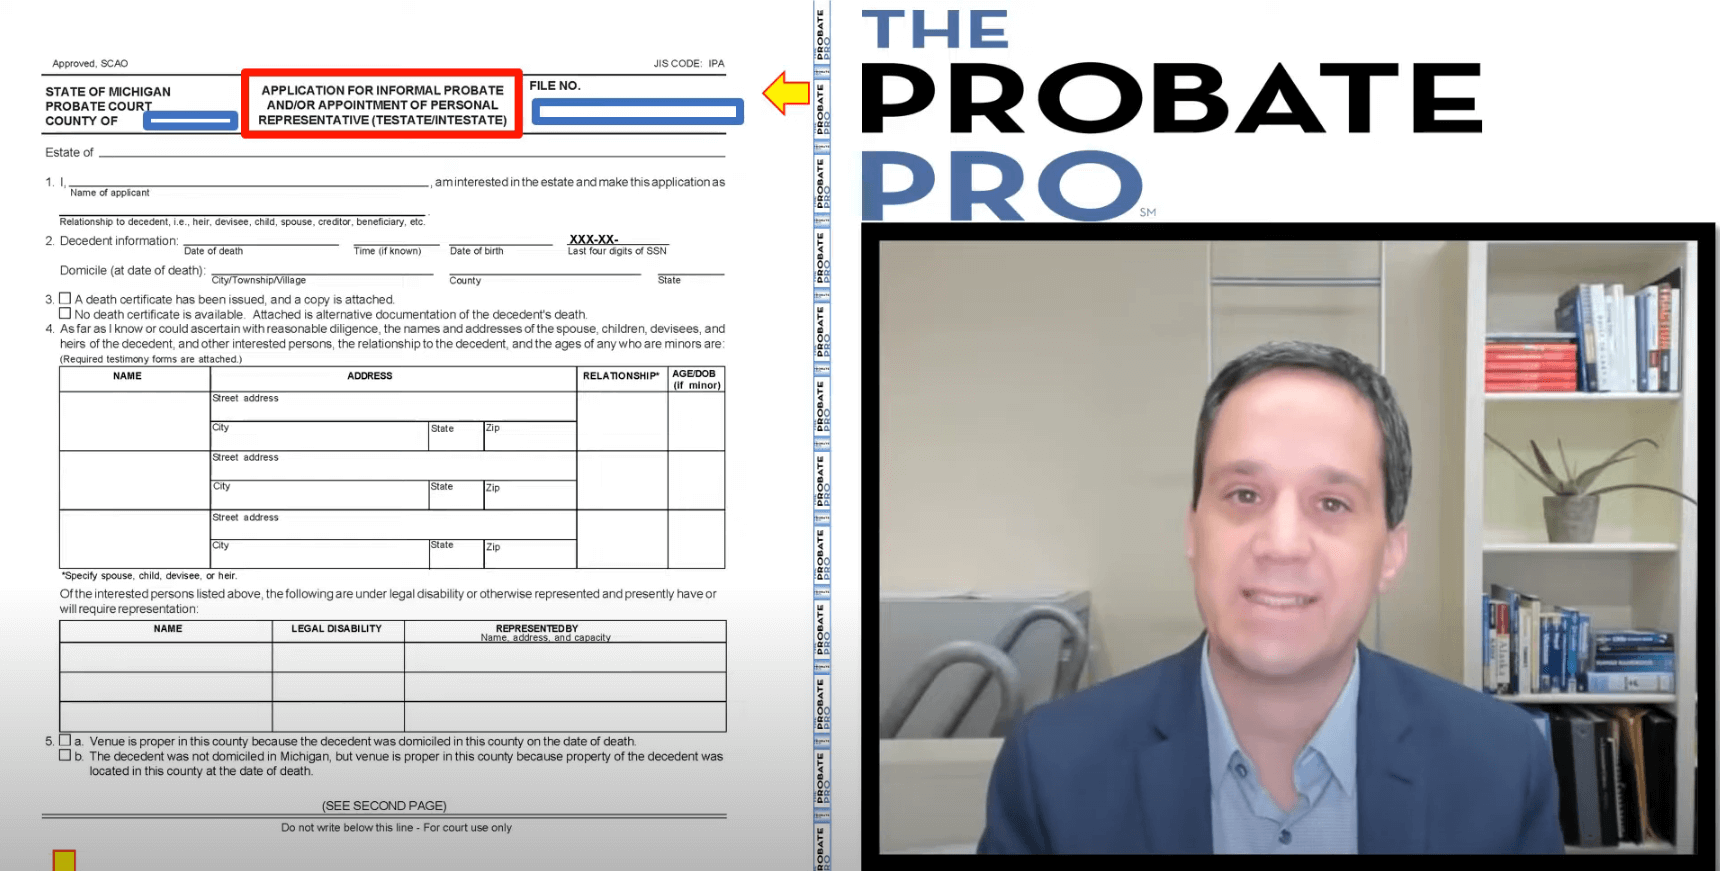 Application for Informal Probate and Appointment of Personal Representative